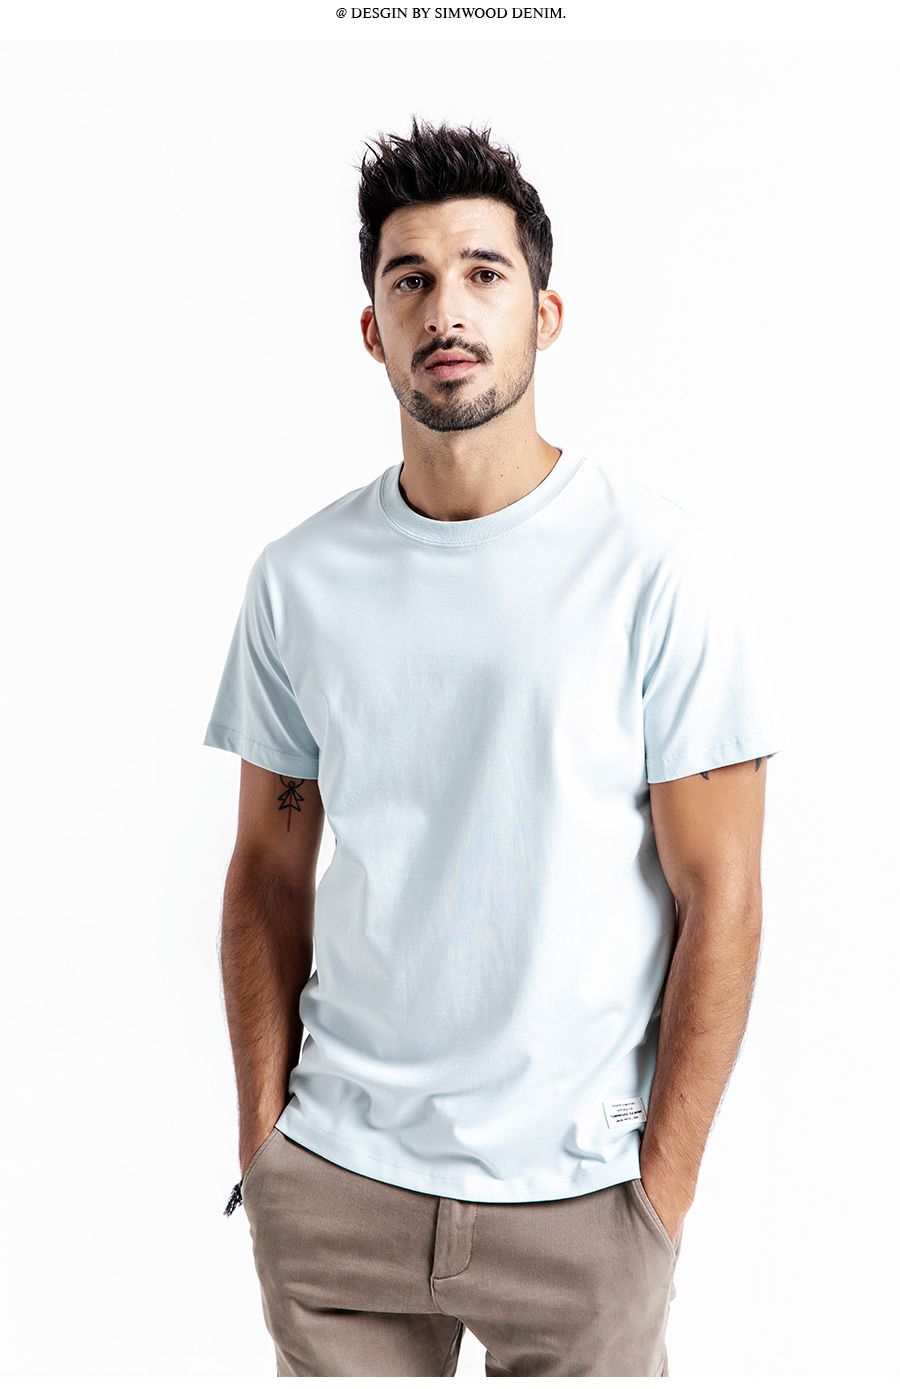 SIMWOOD 19 Summer New T-Shirt Men 100% Cotton Solid Color Casual t shirt Basics O-neck High Quality Plus Size Male Tee 190004 18